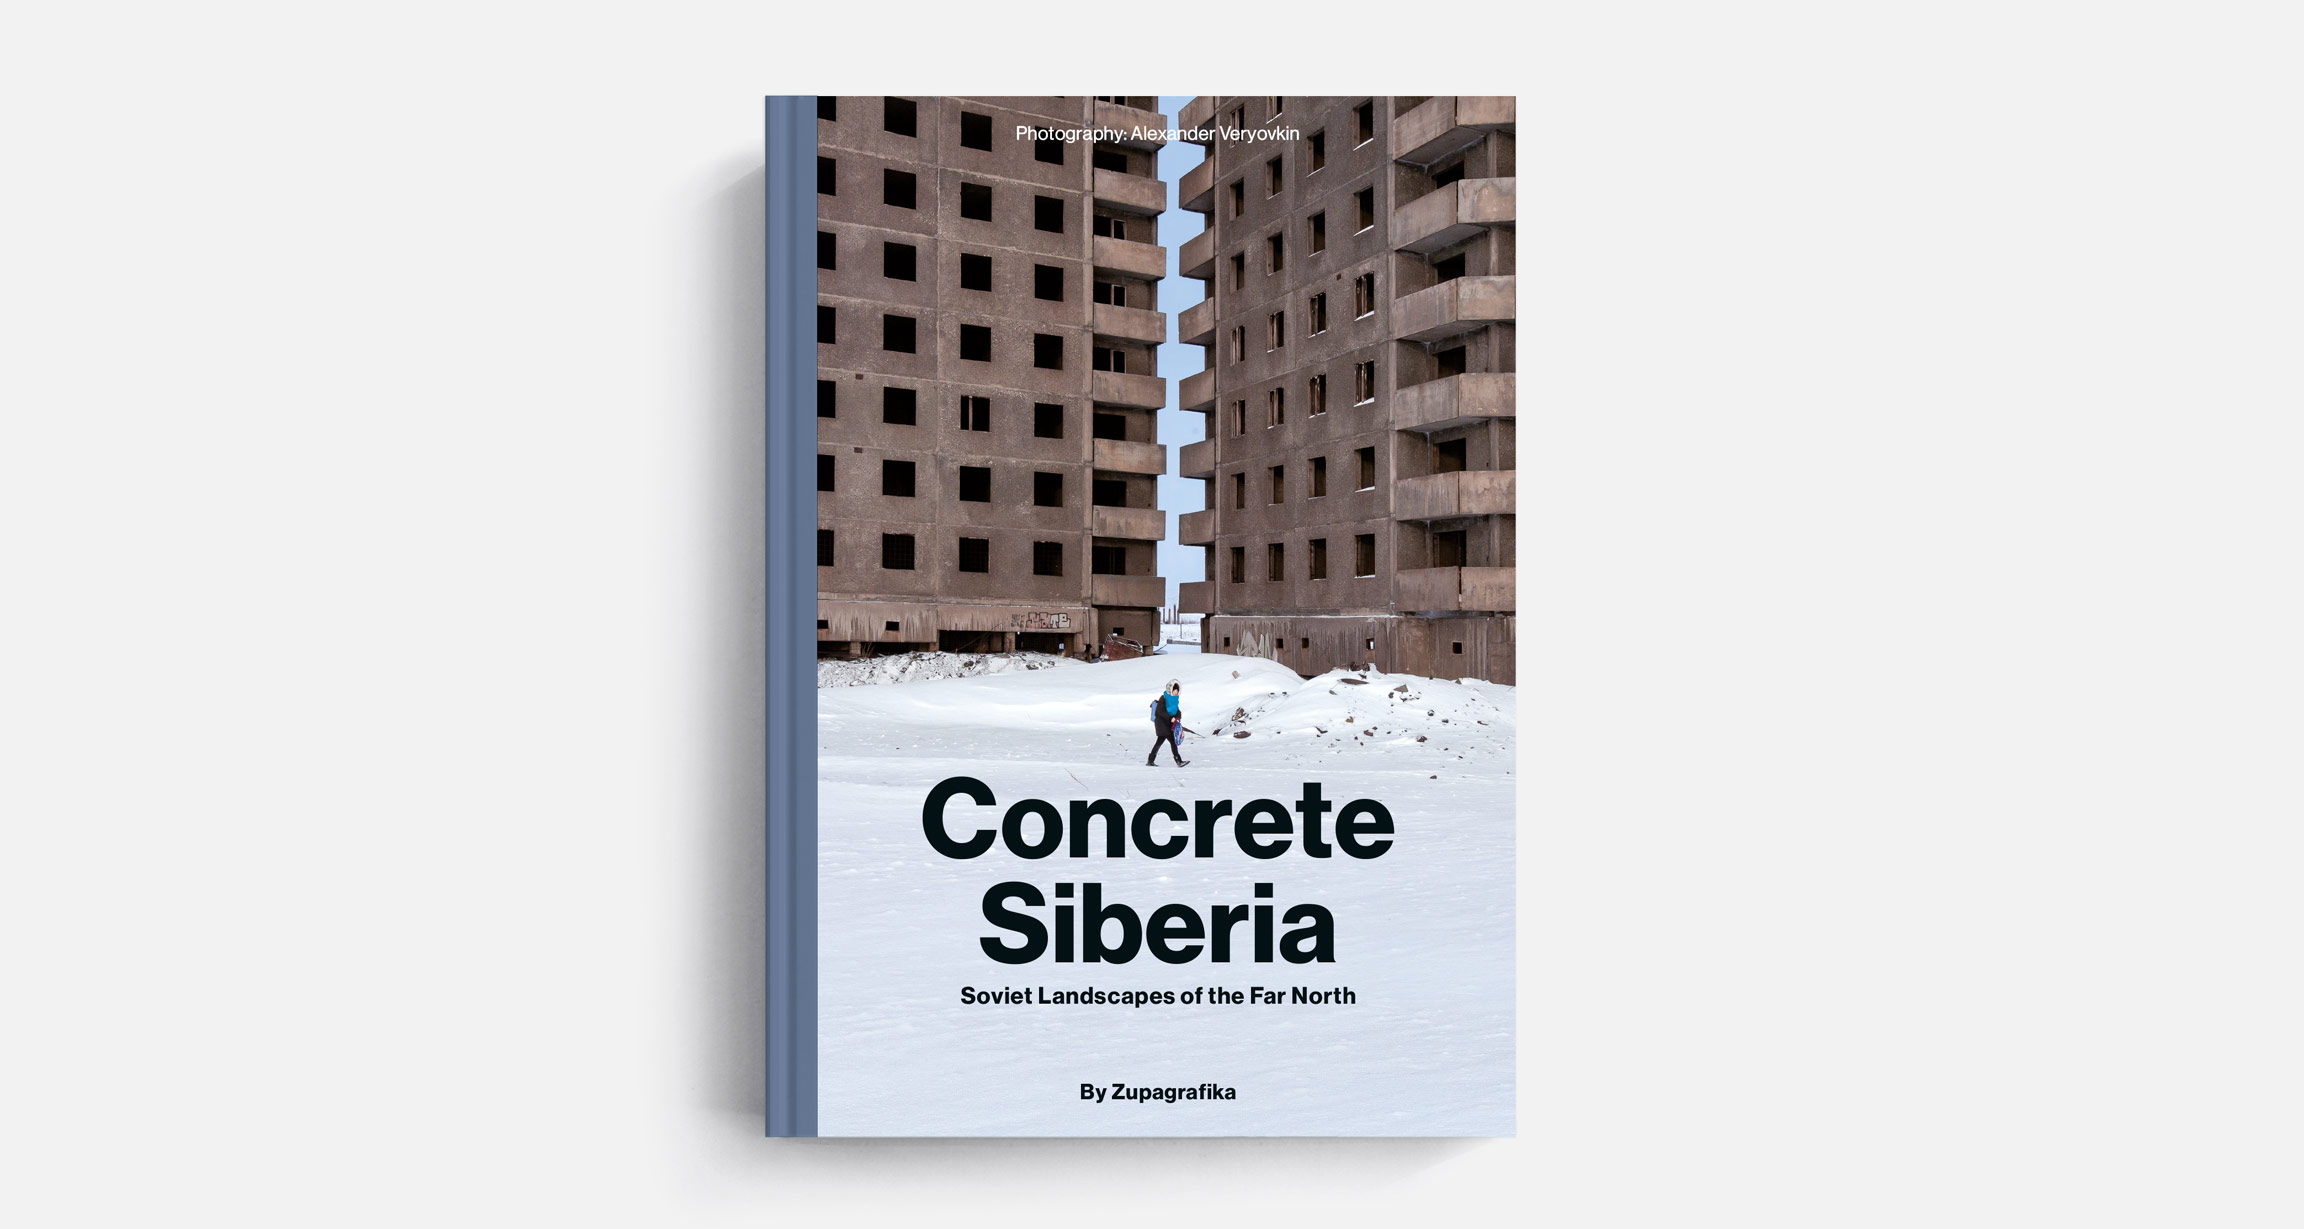 Concrete Siberia: Soviet Landscapes of the Far North